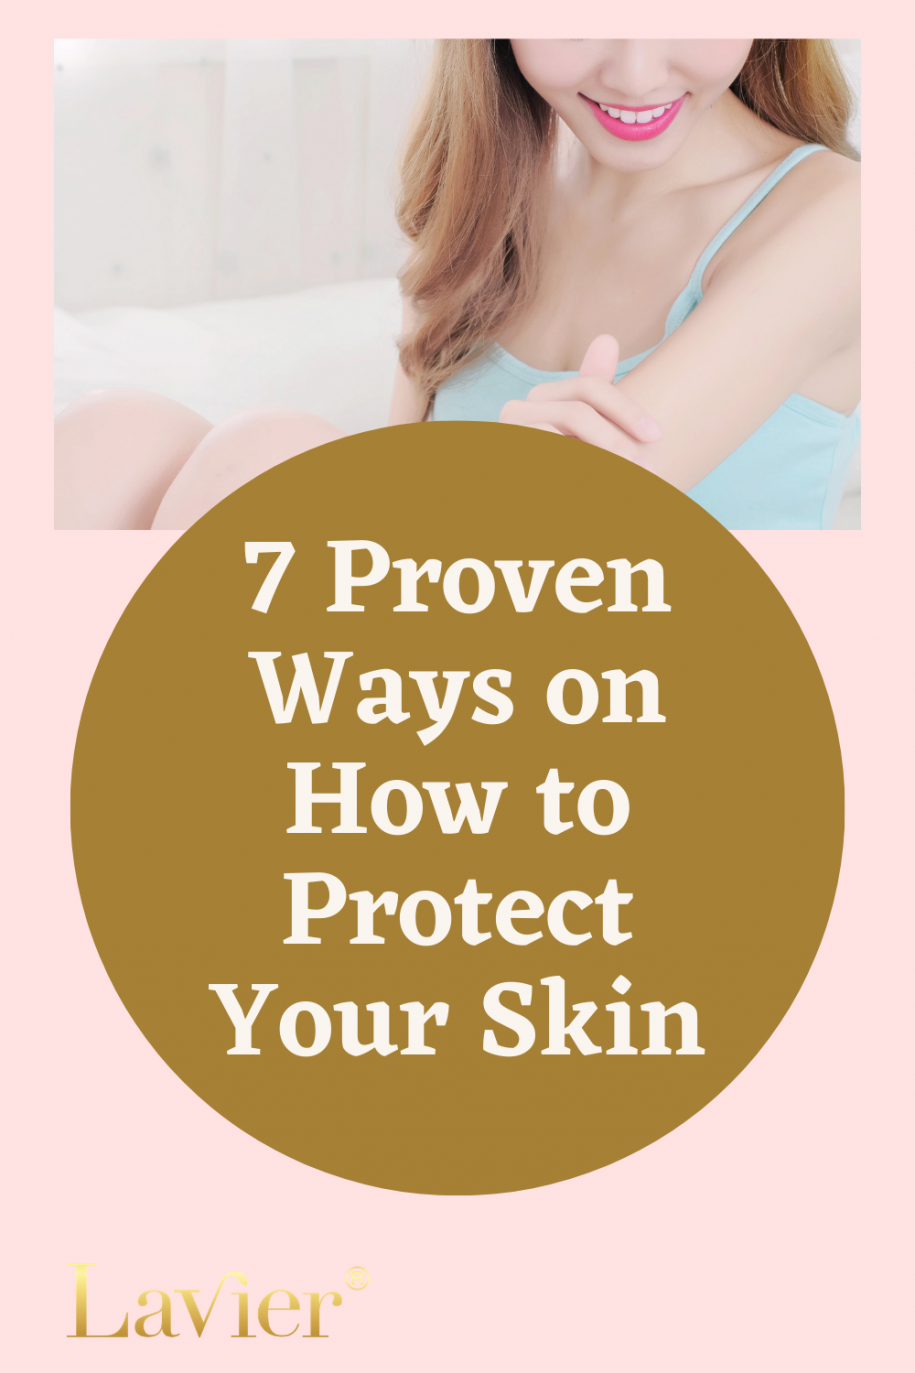 7 Proven Ways on How to Protect Your Skin